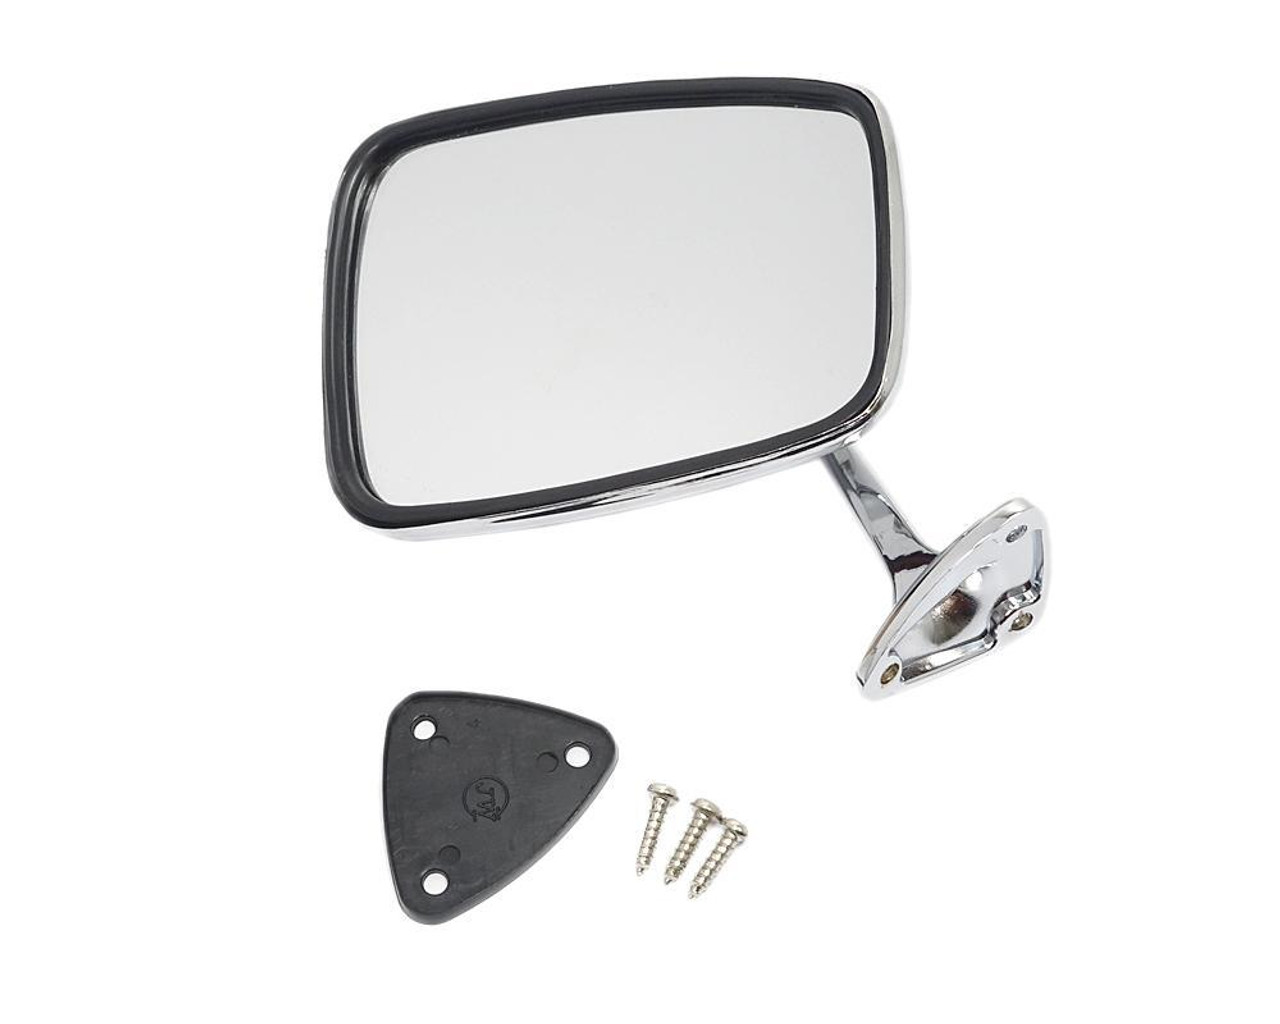 Chrome Convex Exterior Rear View Mirror - 1966-78